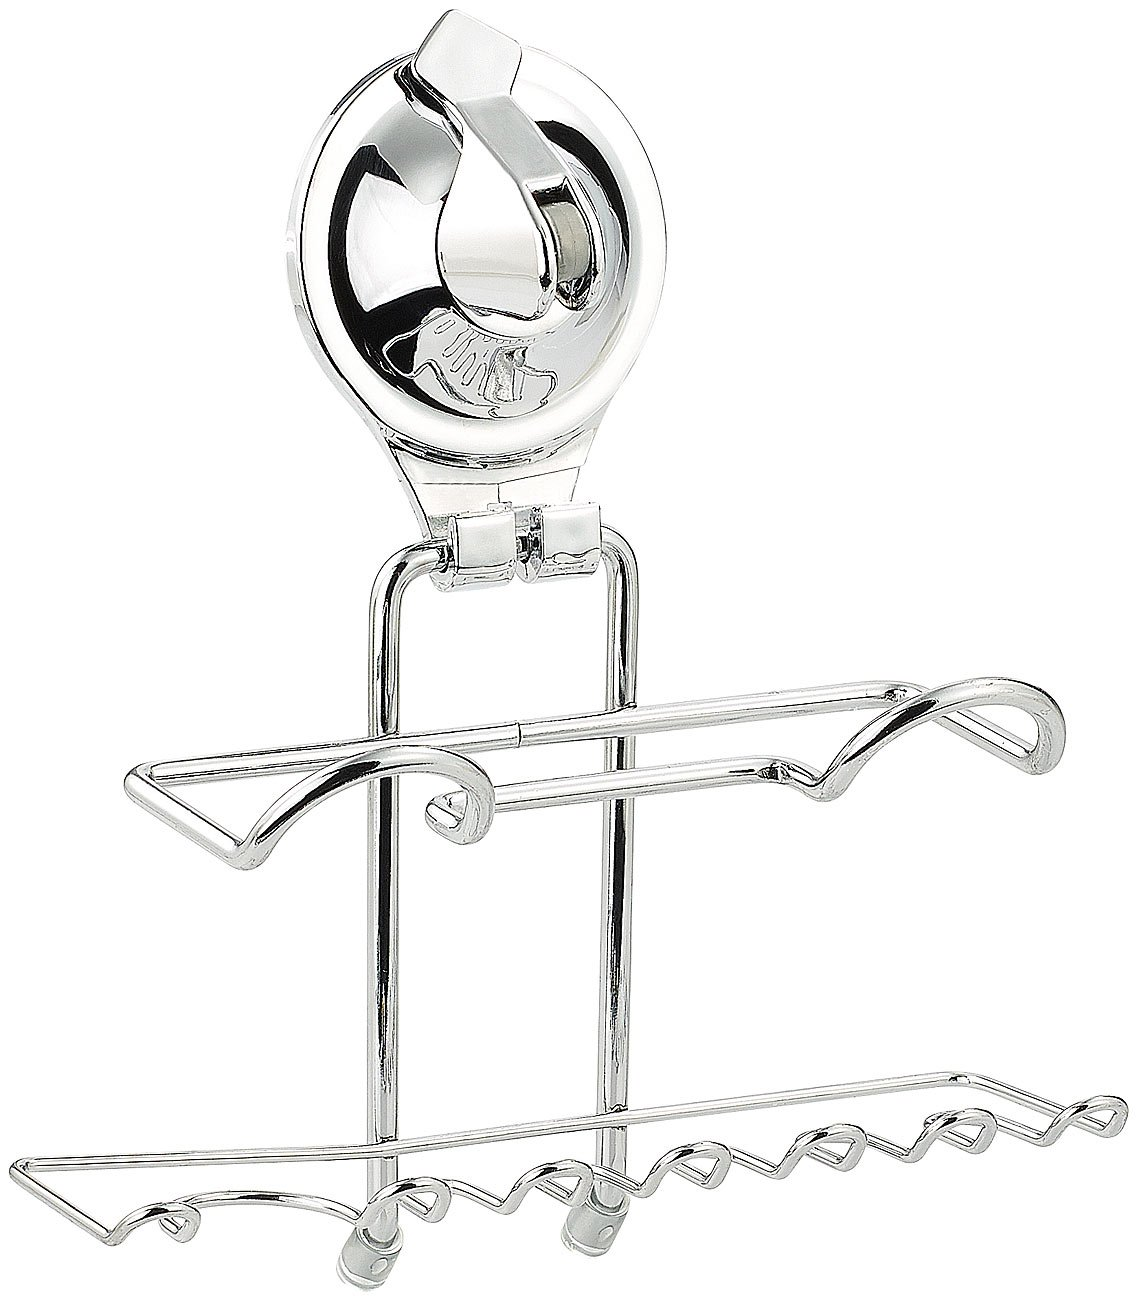 Carlo Milano Toothpaste & Toothbrush Holder with Suction Cup Mount, Stainless Steel